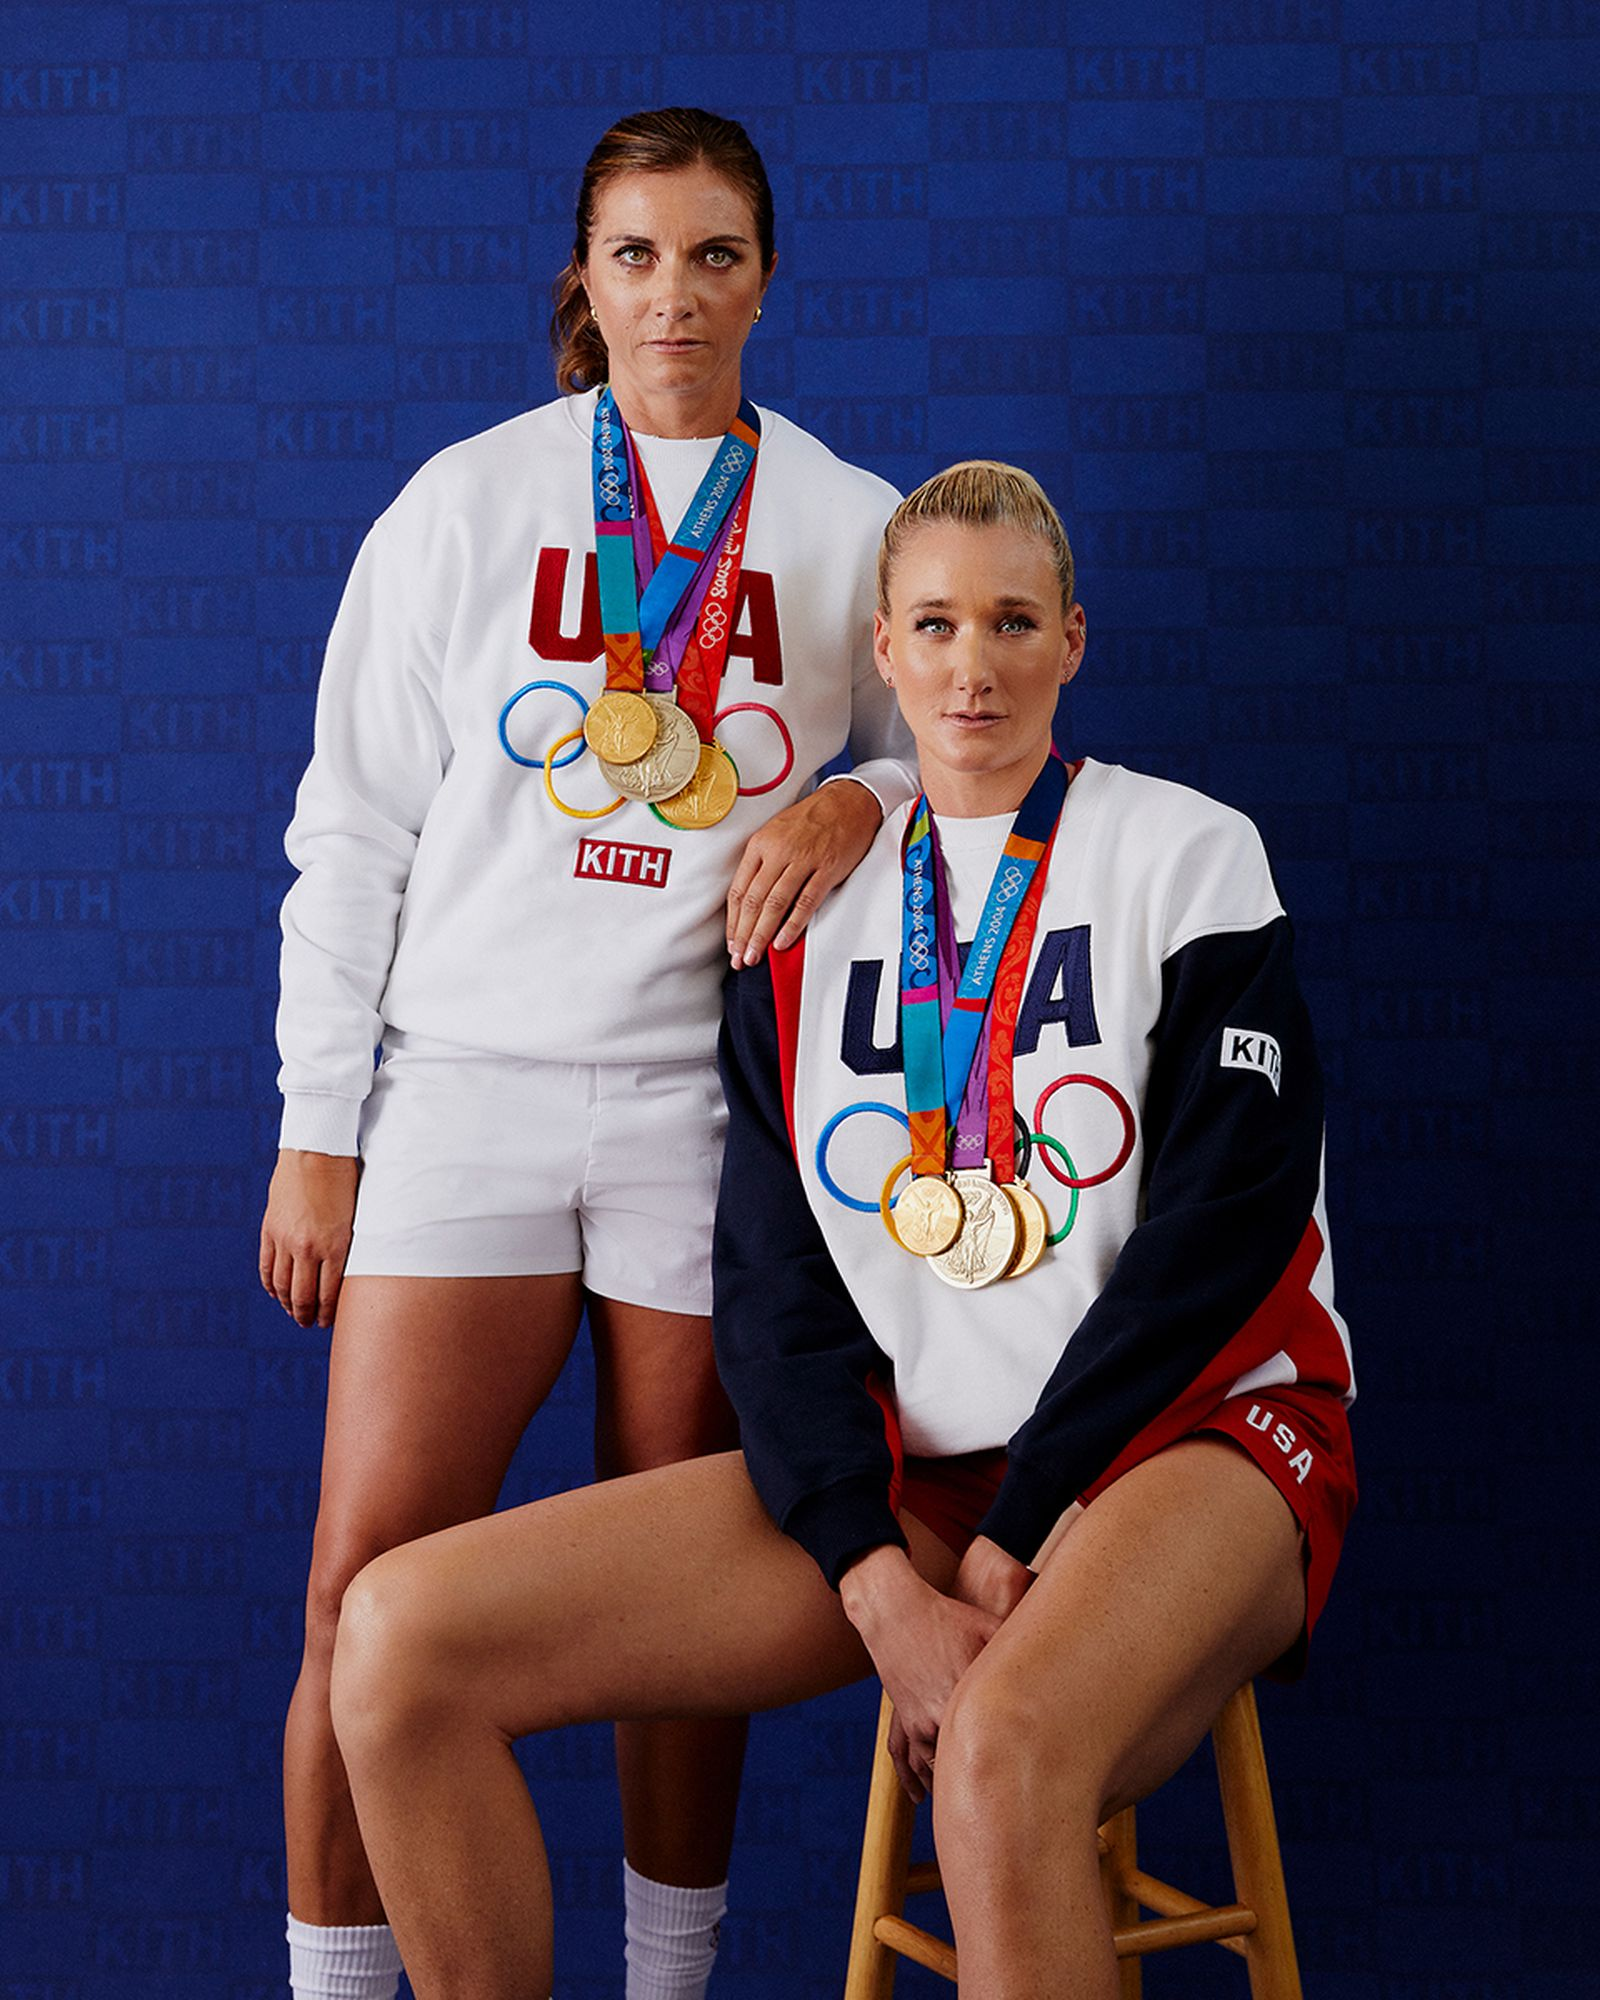 kith 2021 olympics team usa clothing collection release date info buy